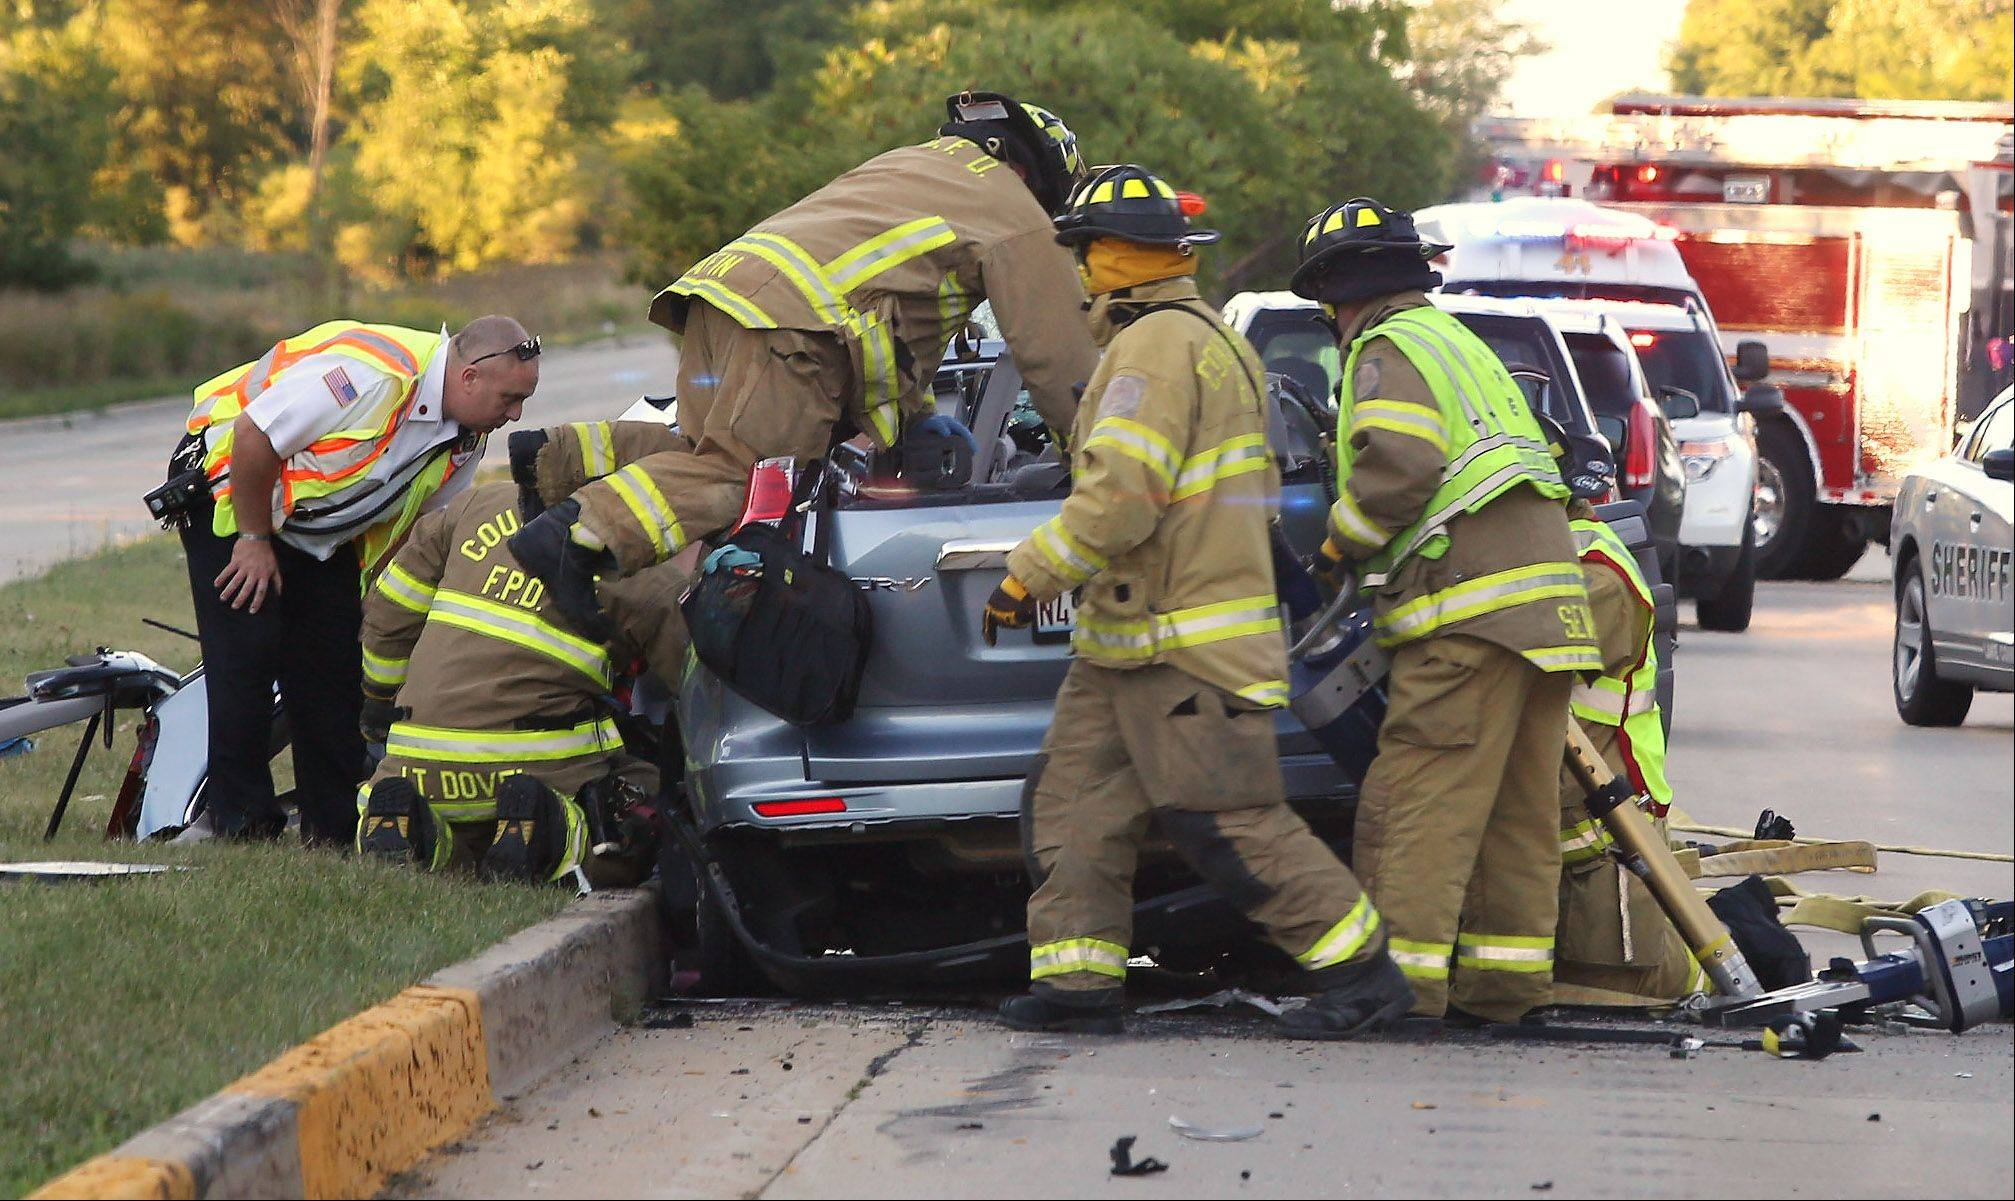 Countryside firefighters work to pull a person from an SUV after a multiple-vehicle accident on northbound Route 83 at West Moreland Road near Long Grove yesterday.